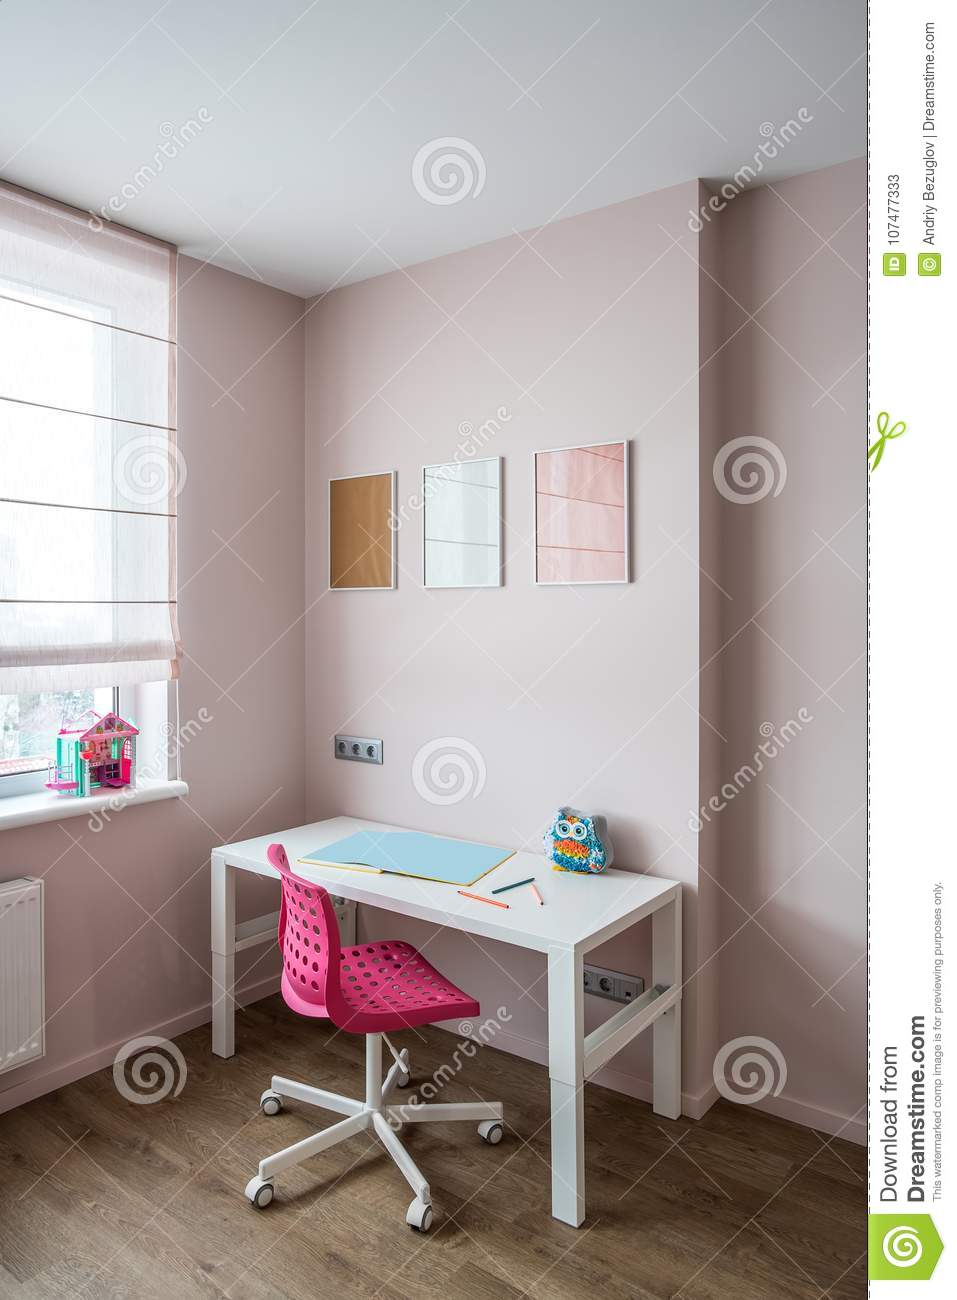 Contemporary children room stock image image of indoor 107477333 modern children room with light pink walls and a parquet on the floor there is a white table with book pencils and a toy and a pink chair aloadofball Image collections